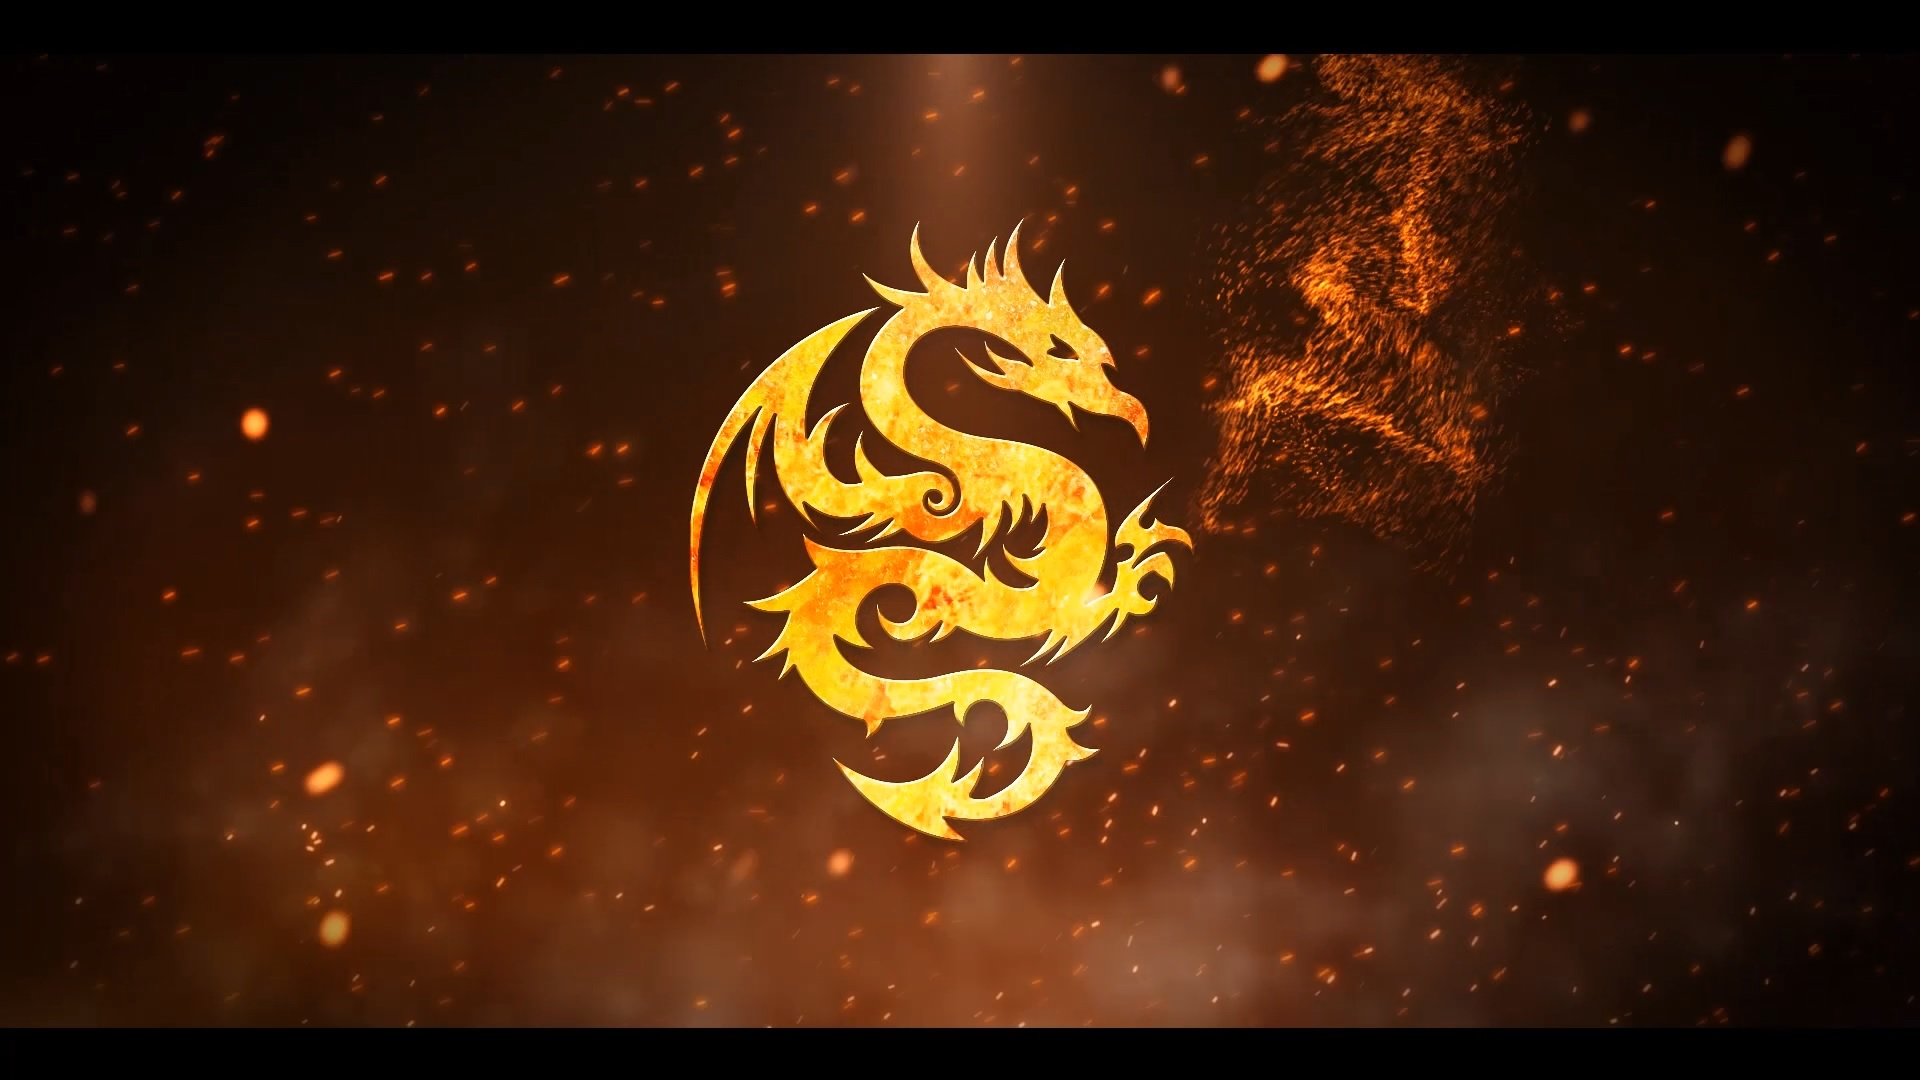 Particle Fire Logo Reveal (After Effects)